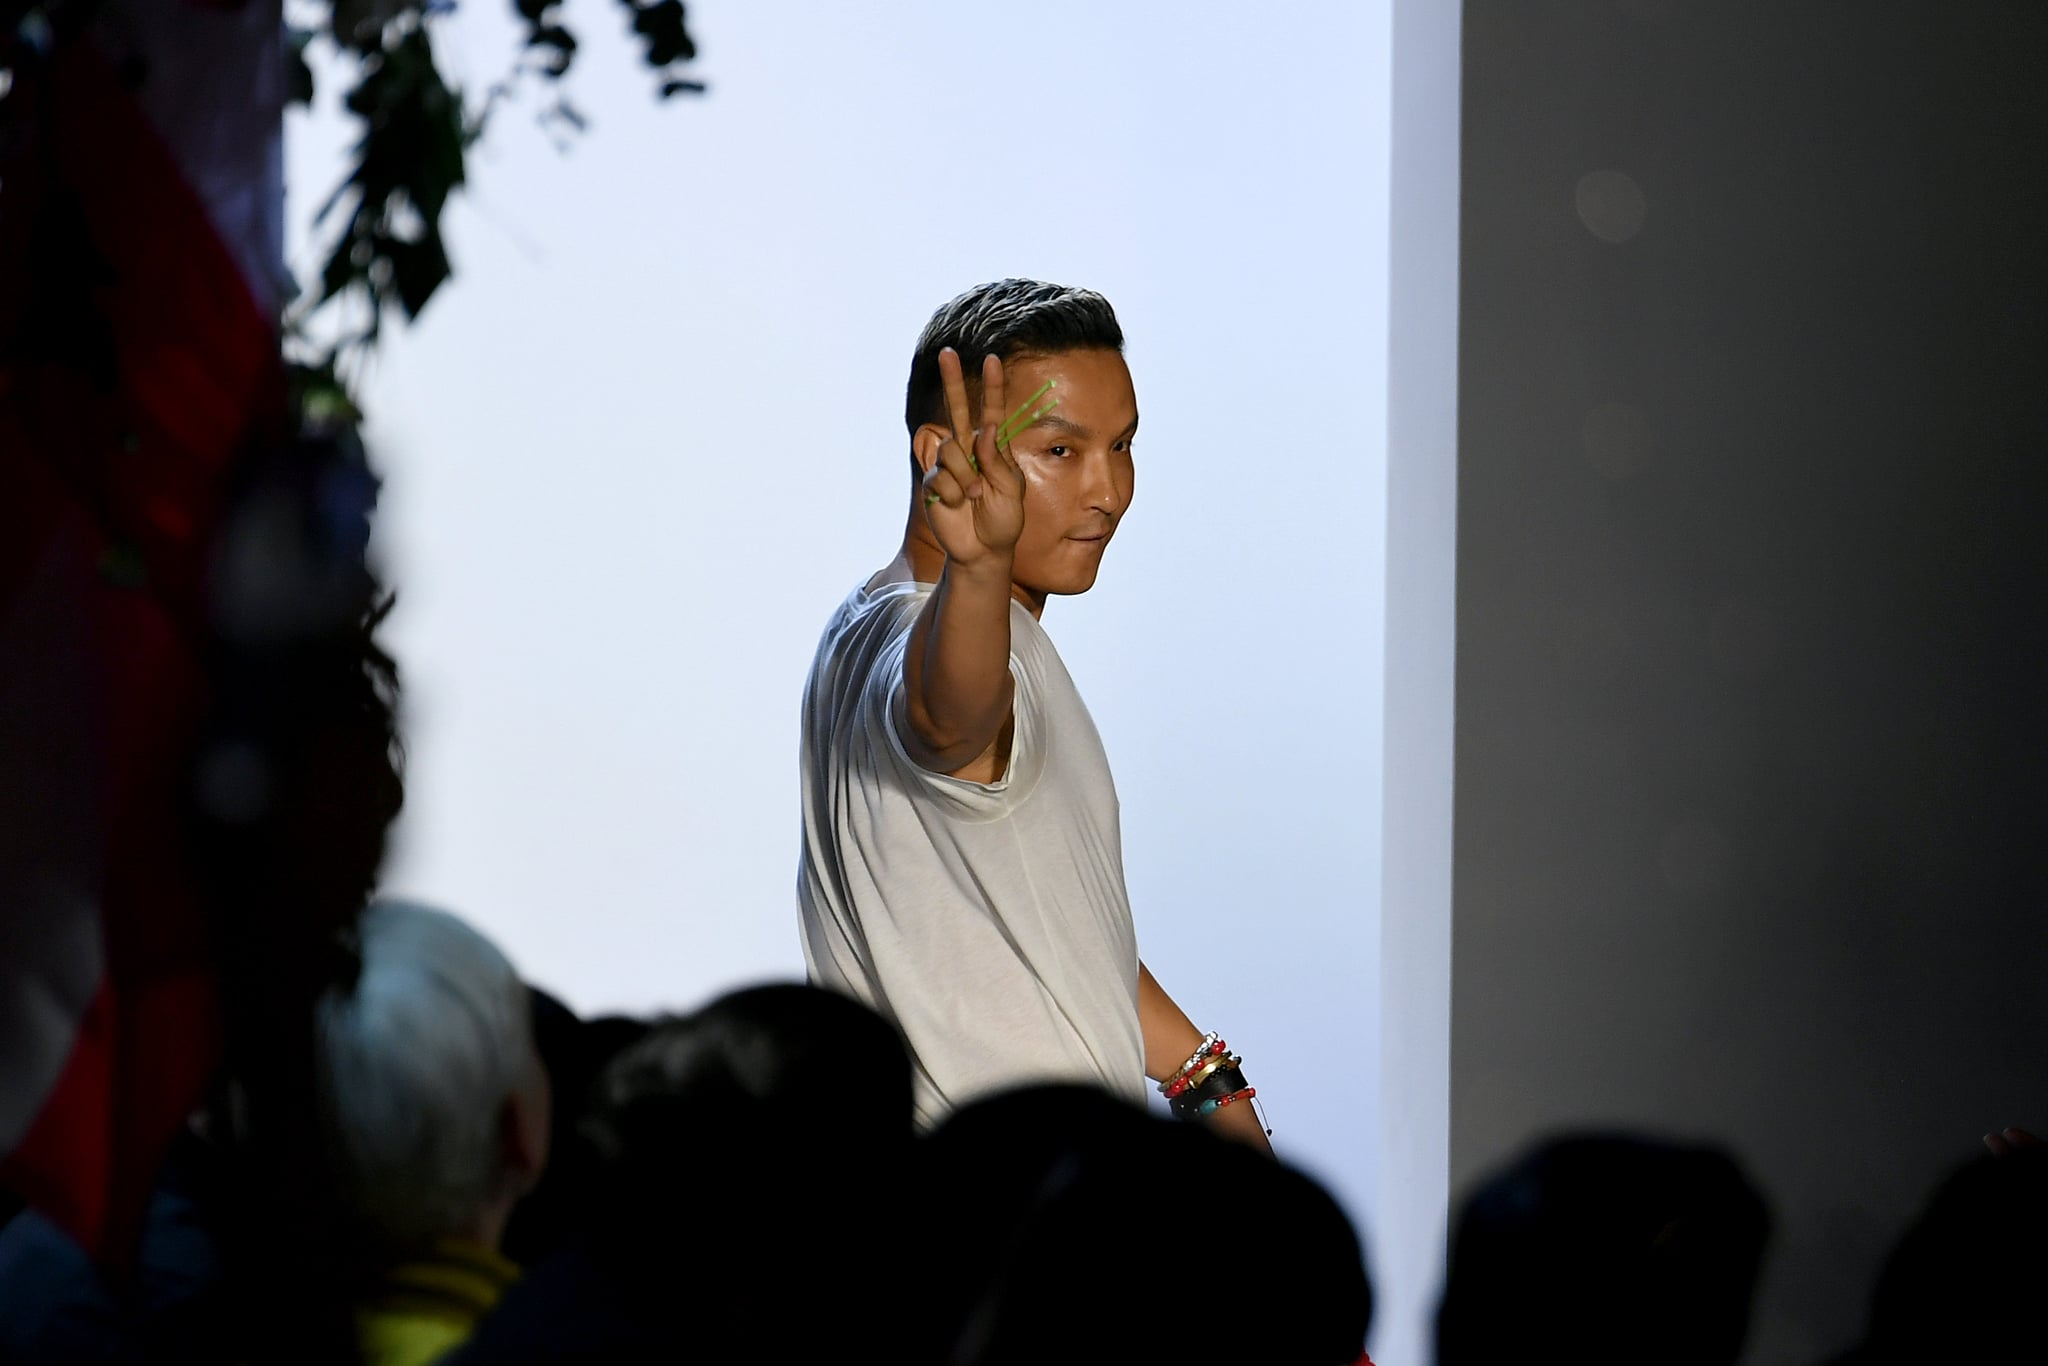 NEW YORK, NEW YORK - SEPTEMBER 08: Prabal Gurung walks the runway for Prabal Gurung during New York Fashion Week: The Shows at Gallery I at Spring Studios on September 08, 2019 in New York City. (Photo by Mike Coppola/Getty Images for NYFW: The Shows)